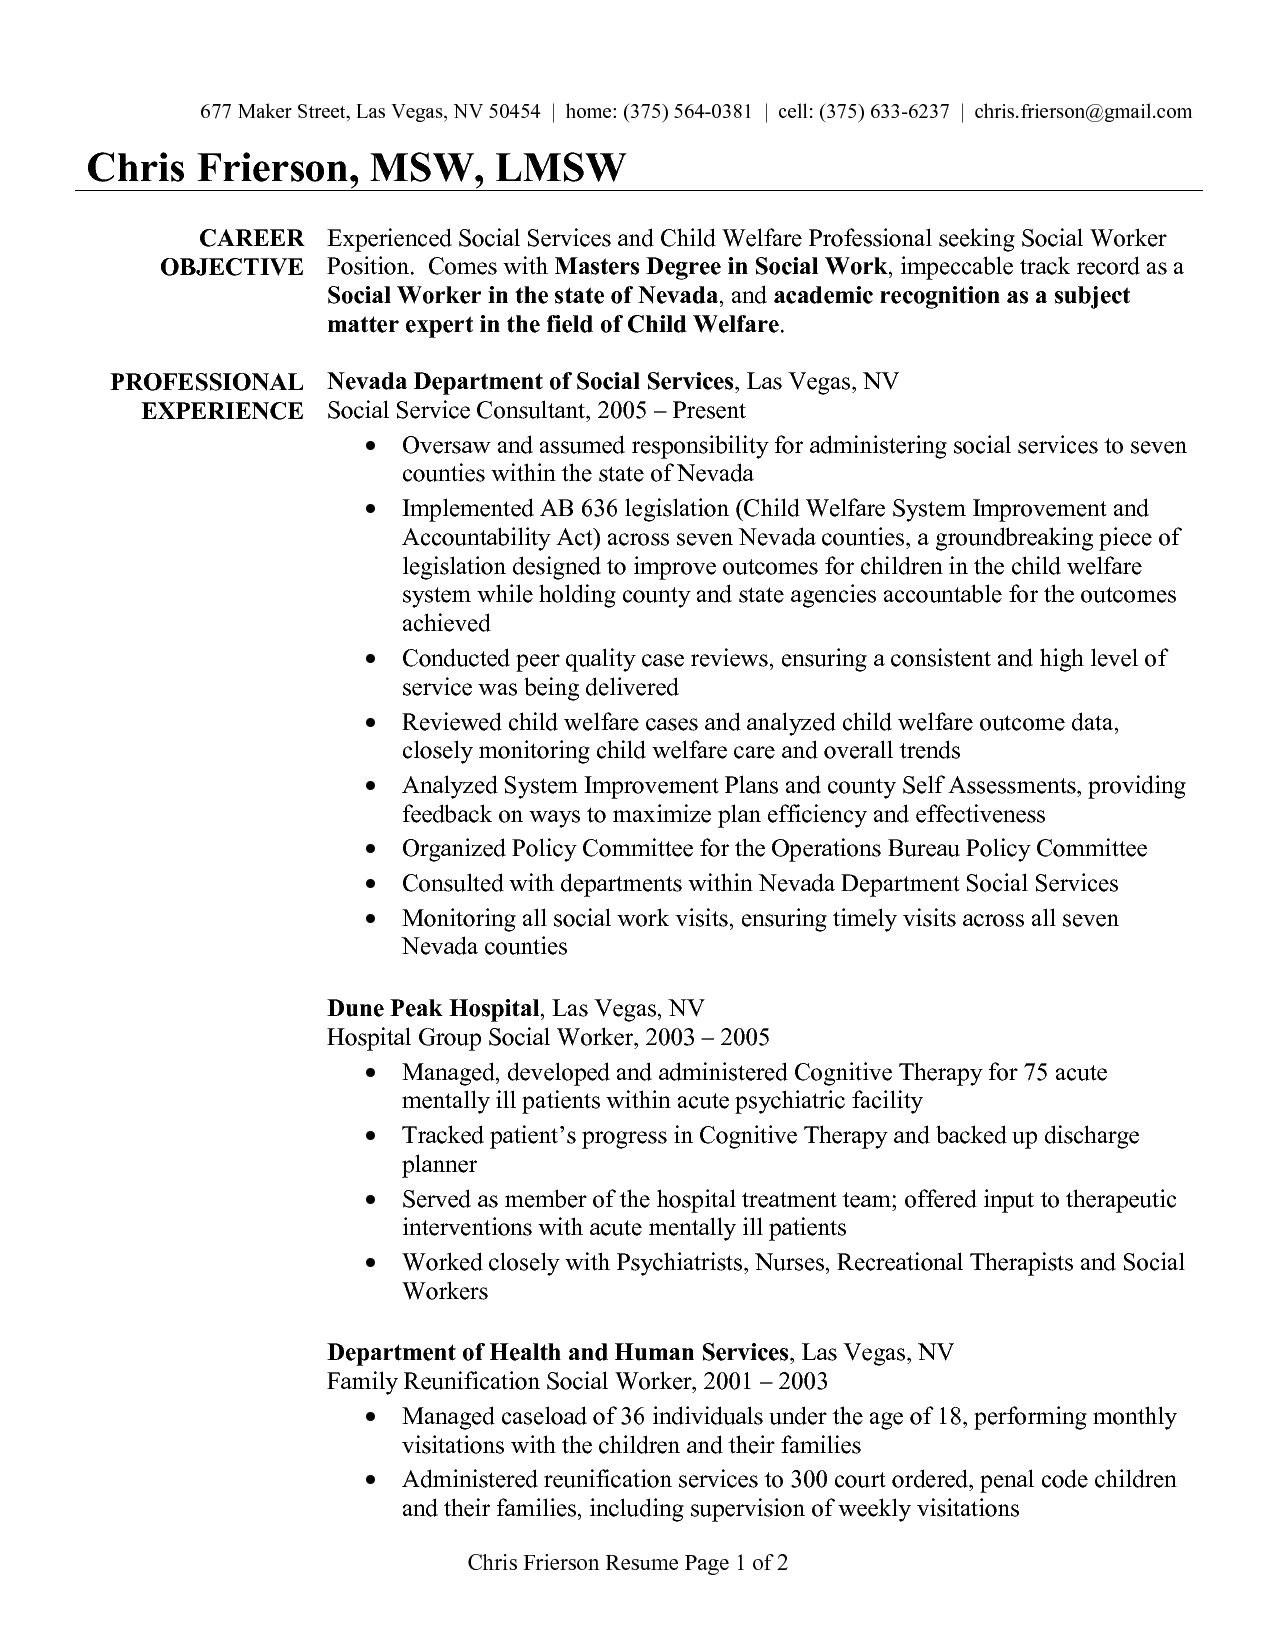 social work resume examples social worker resume sample - Examples Of Work Resumes